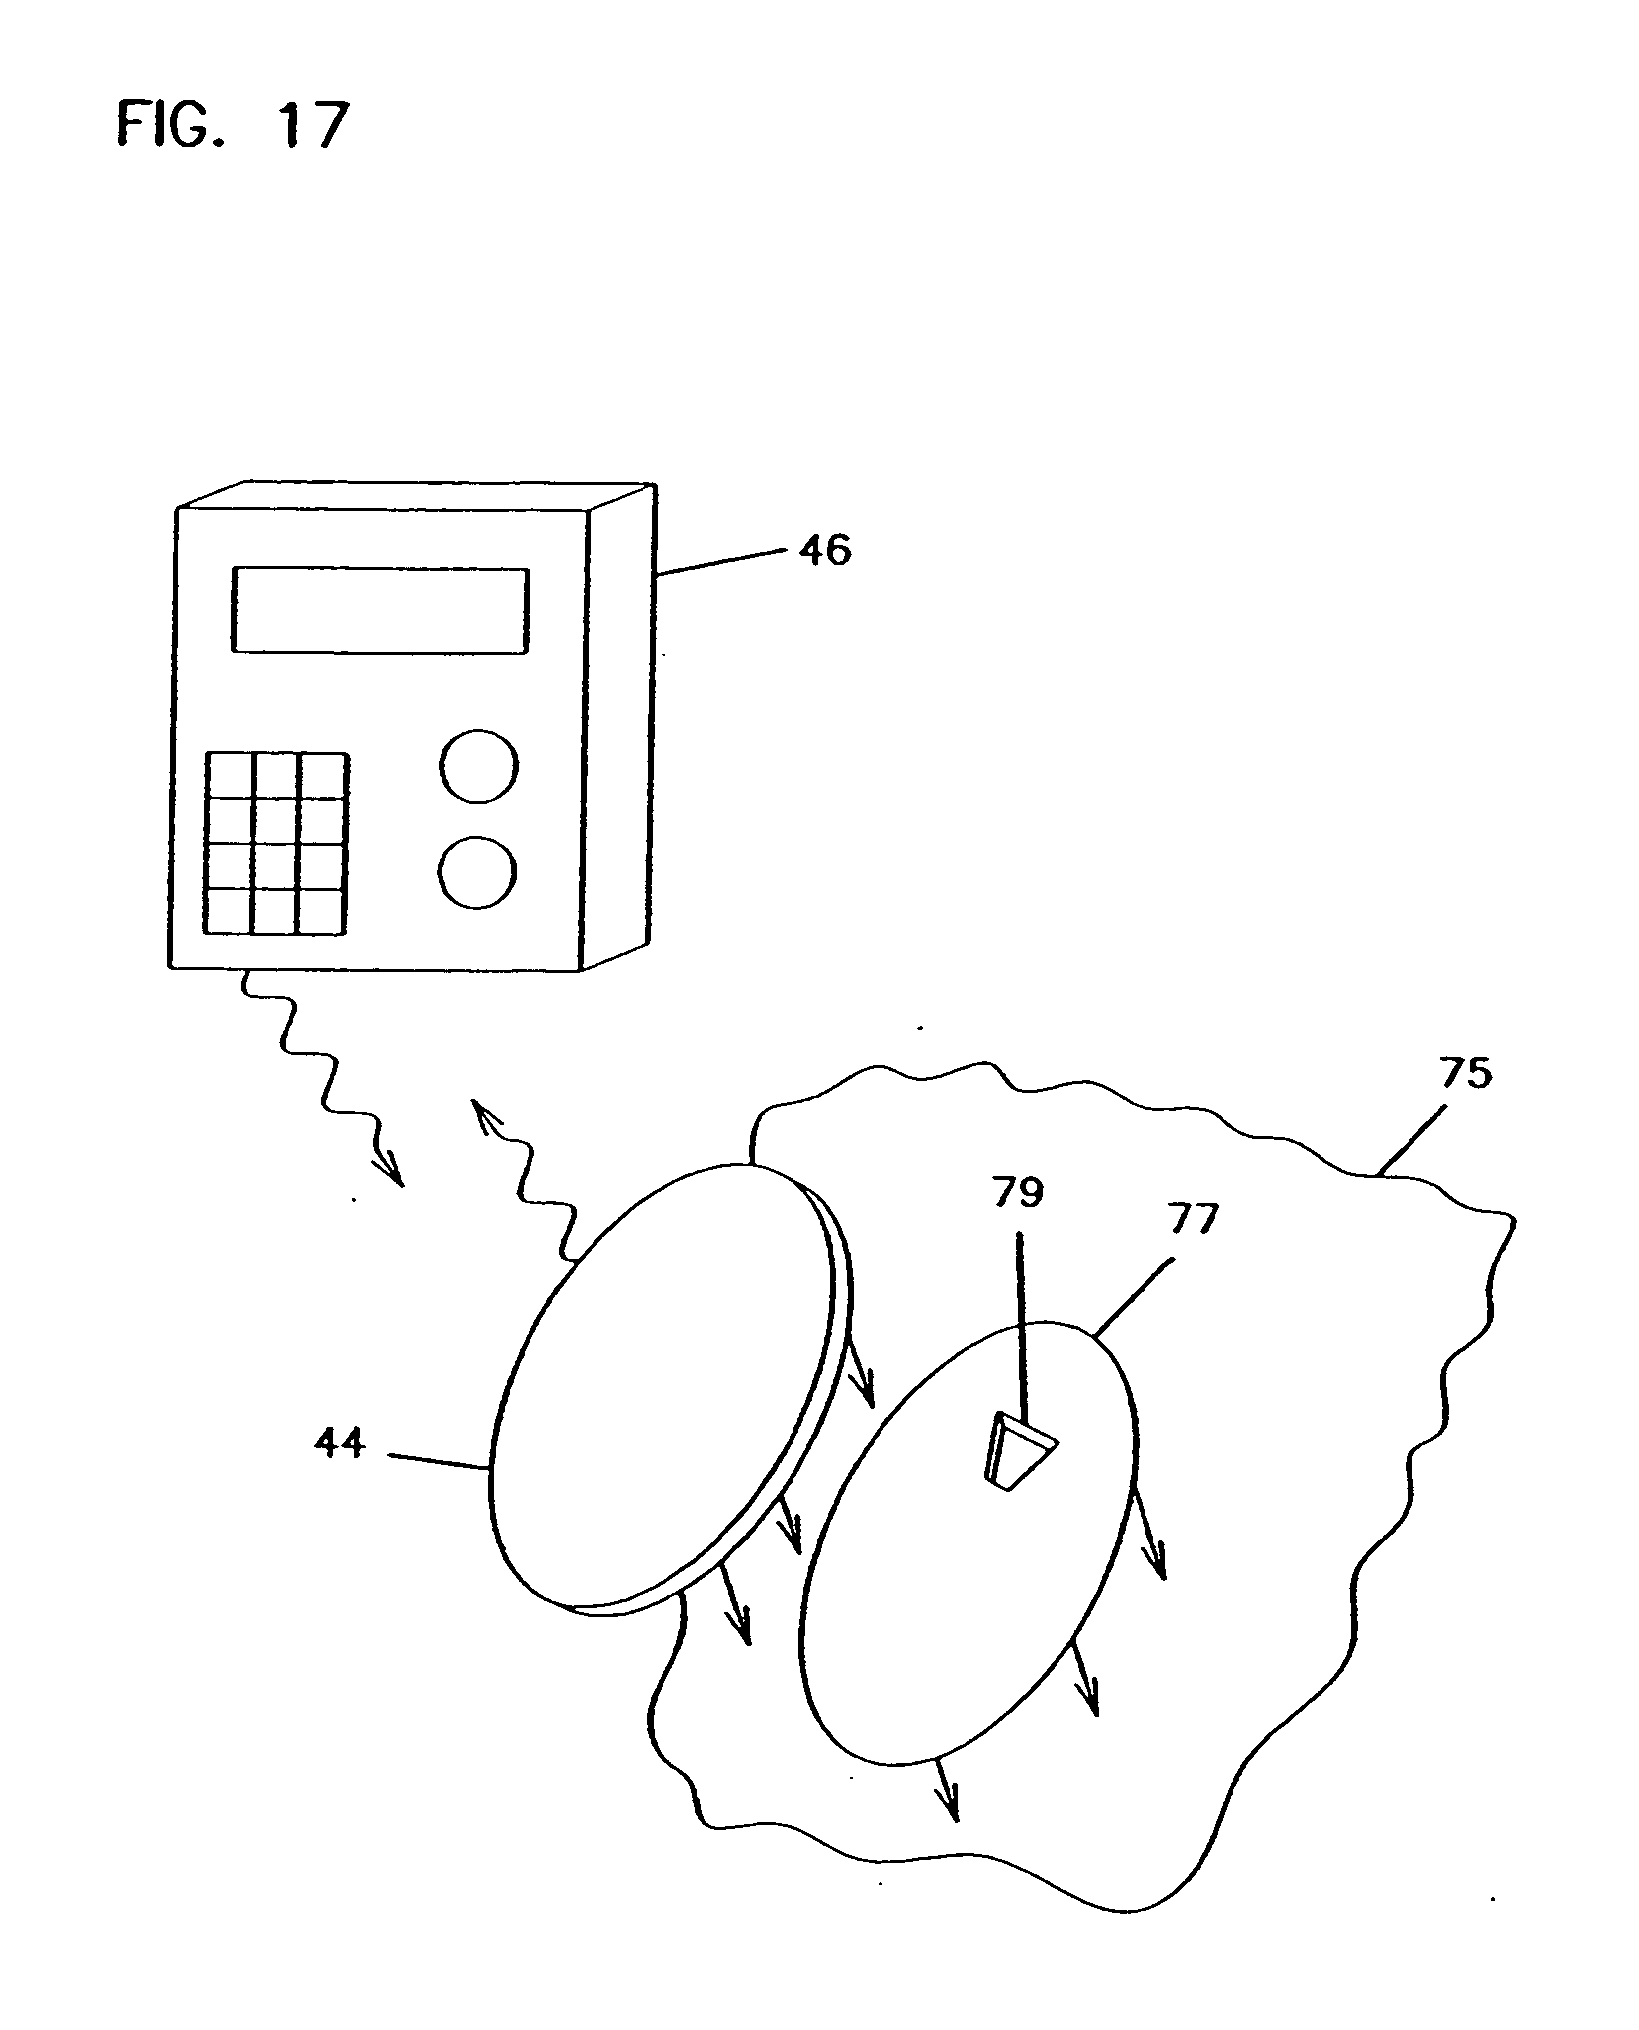 Us20100223021a1 analyte monitoring device and methods of use patents